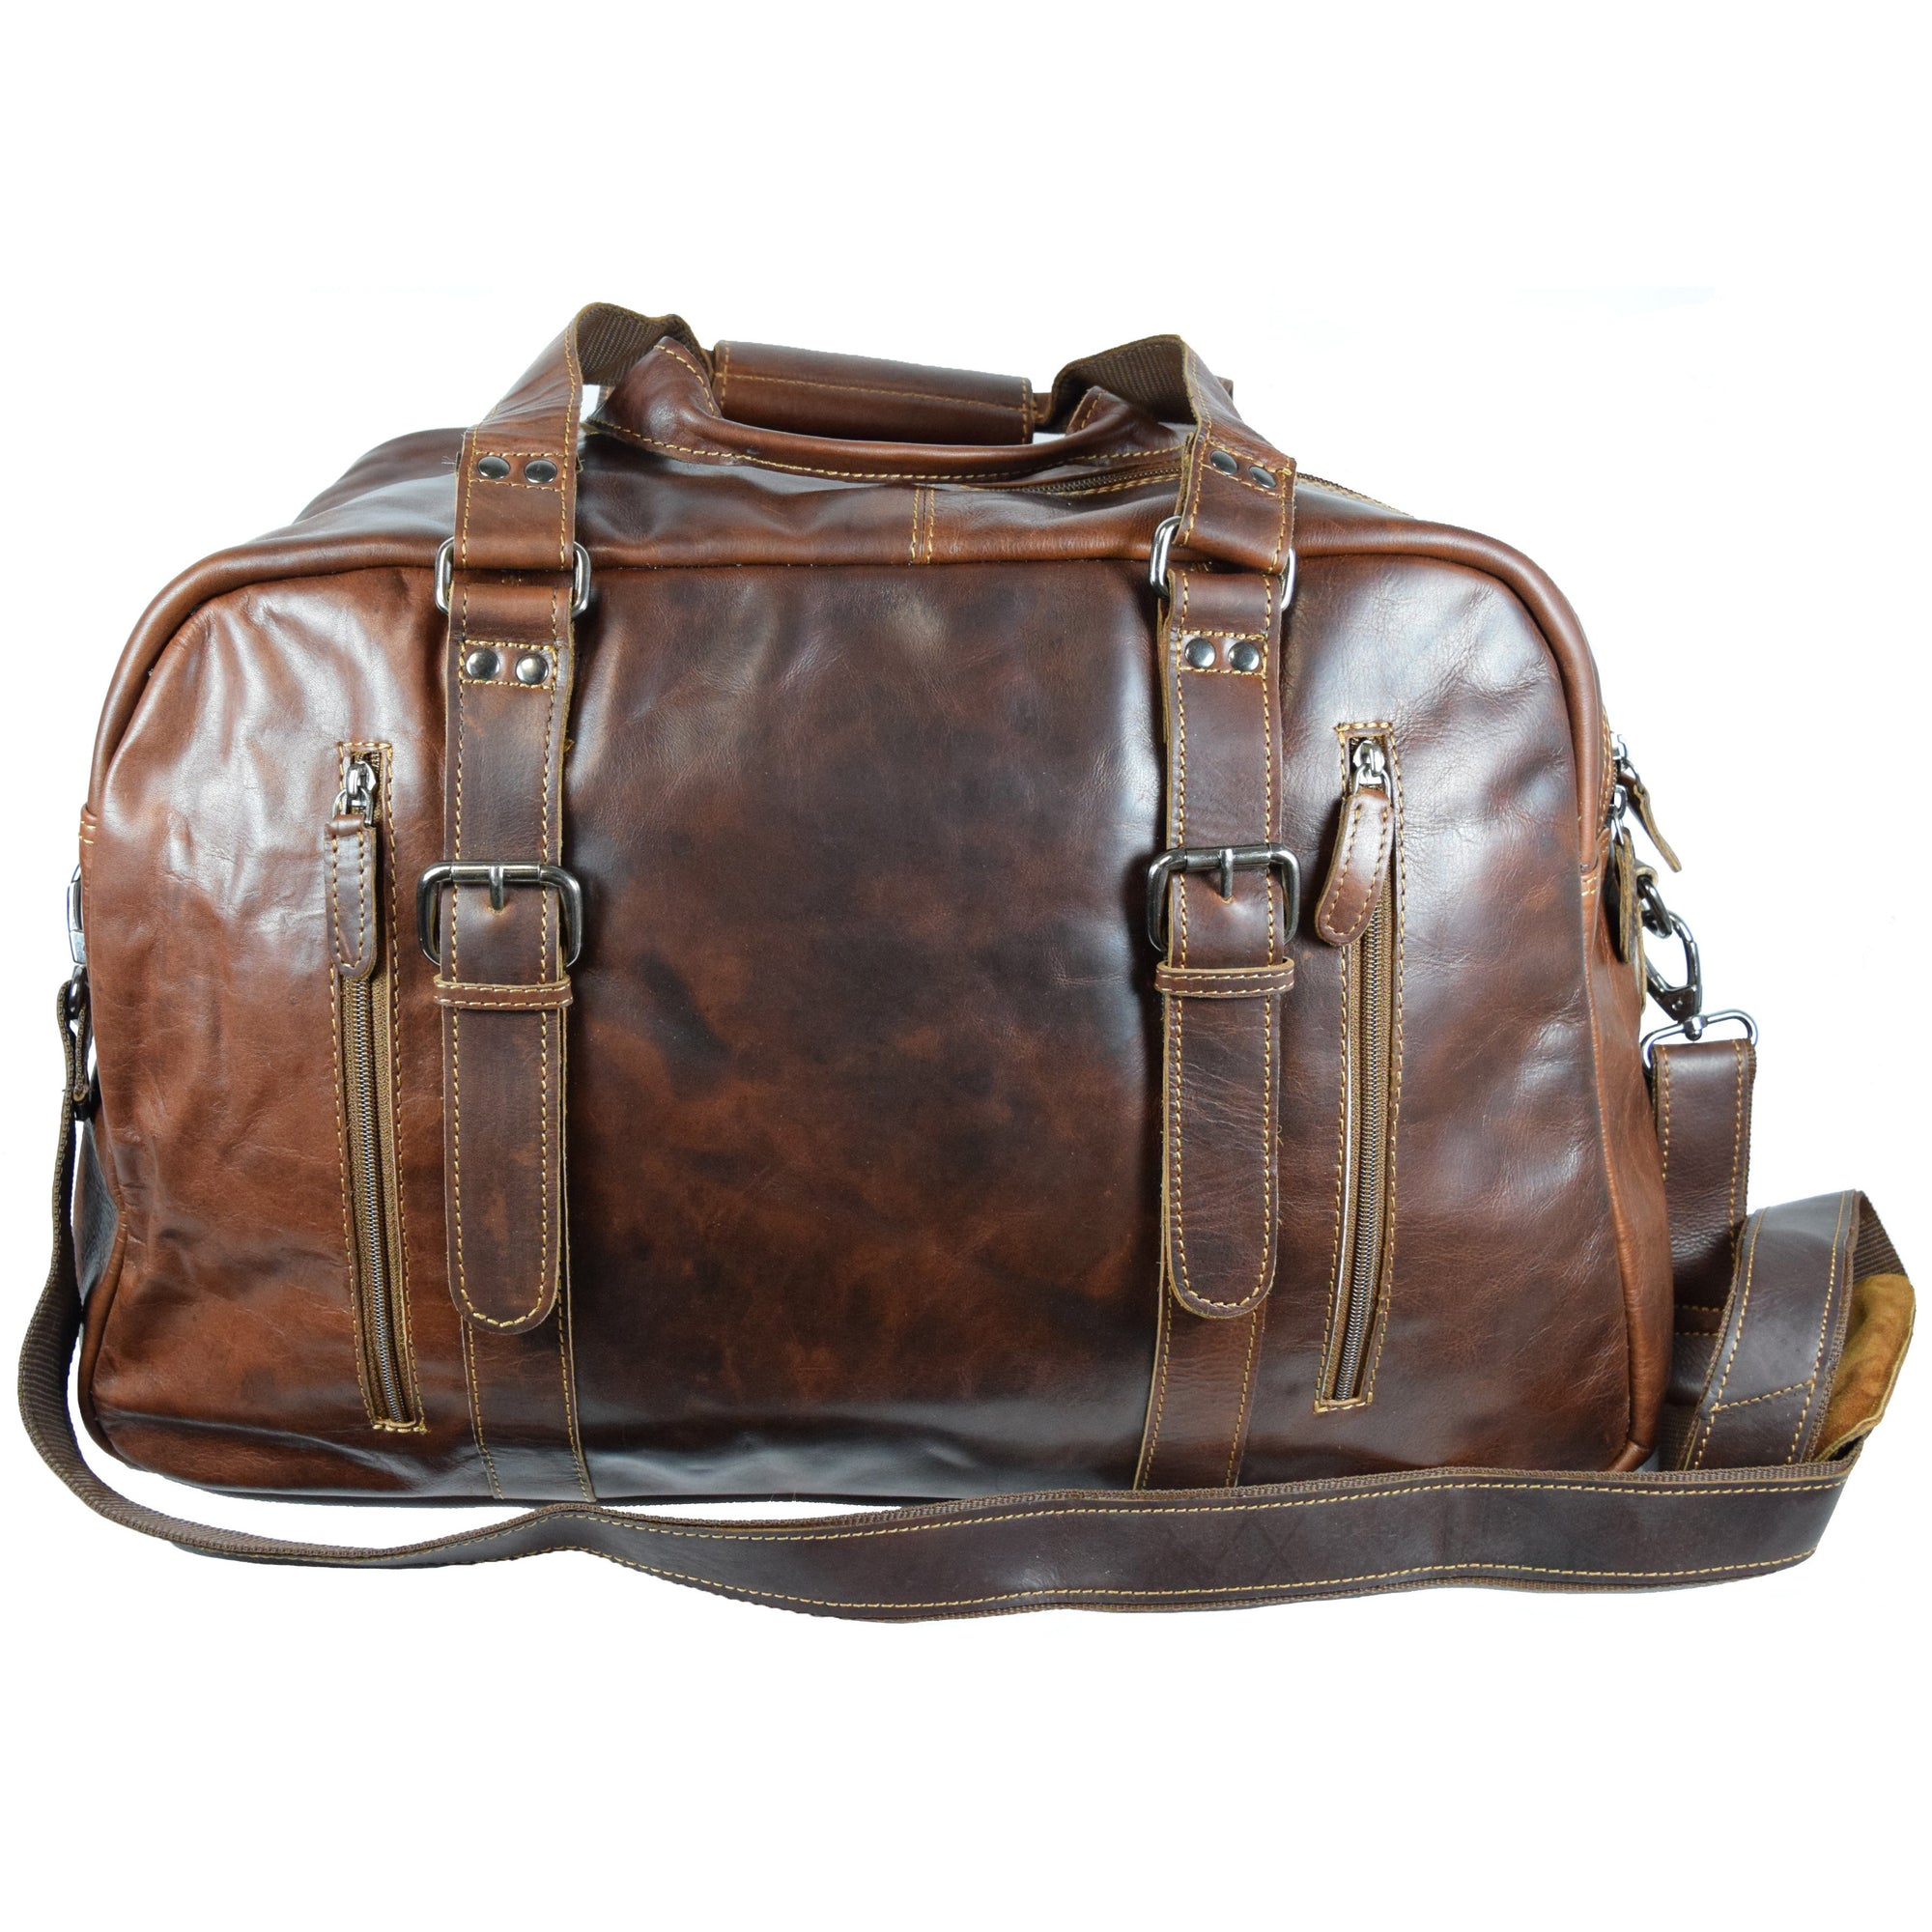 Voyager Duffle Bag - Sandal - Greenwood Australia - Handcrafted Premium Leather Goods